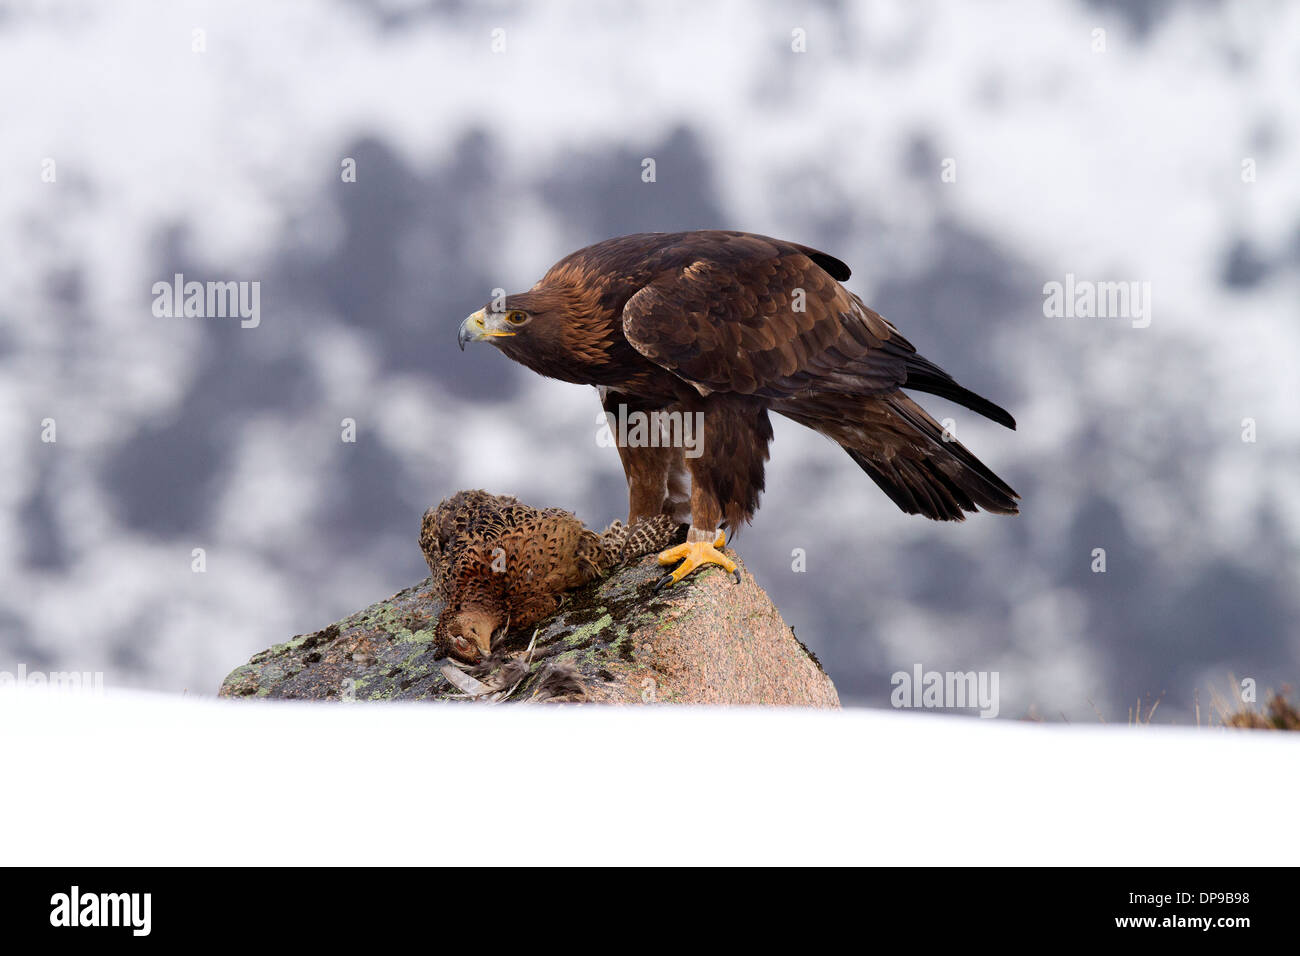 Golden Eagle, Aquila chrysaetos with prey - Stock Image